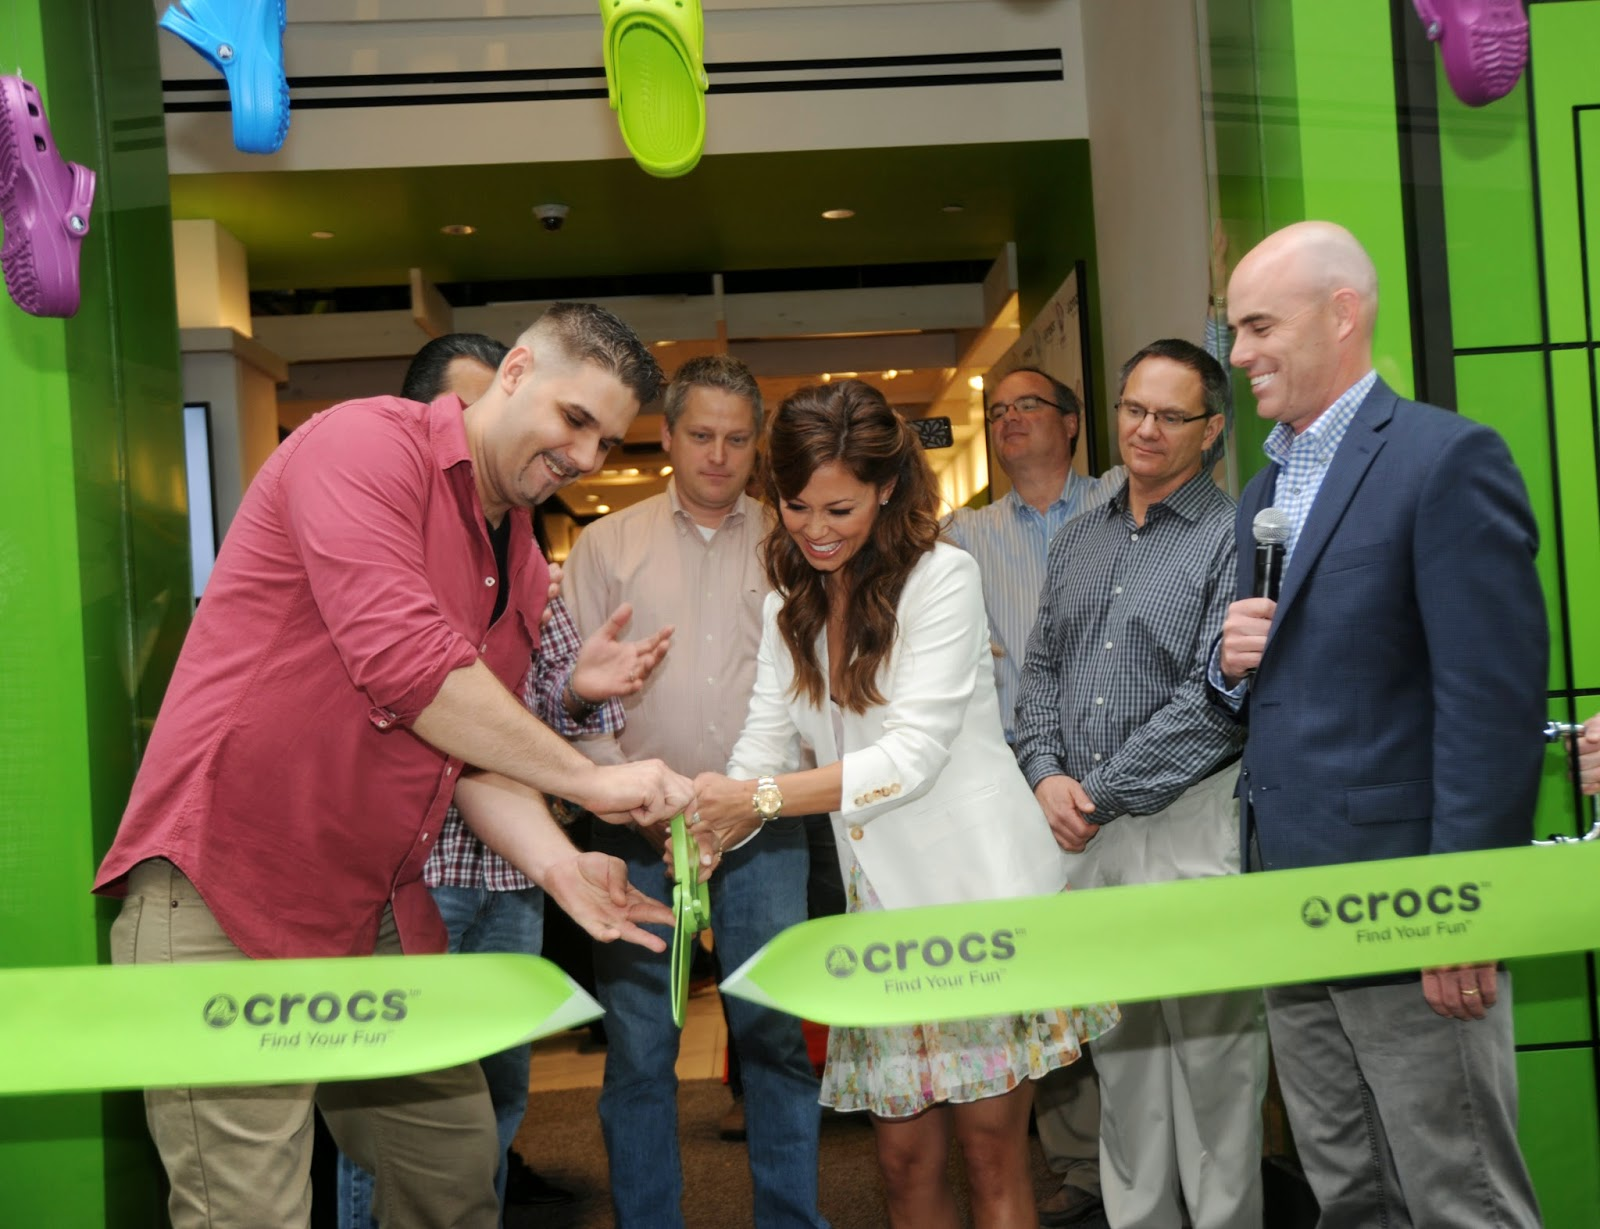 a33ed17a1 Vanessa Lachey helped kick off the Crocs 34th Street flagship store grand  opening on May 15th. Vanessa looked fabulous in an ivory dress paired with  Crocs ...